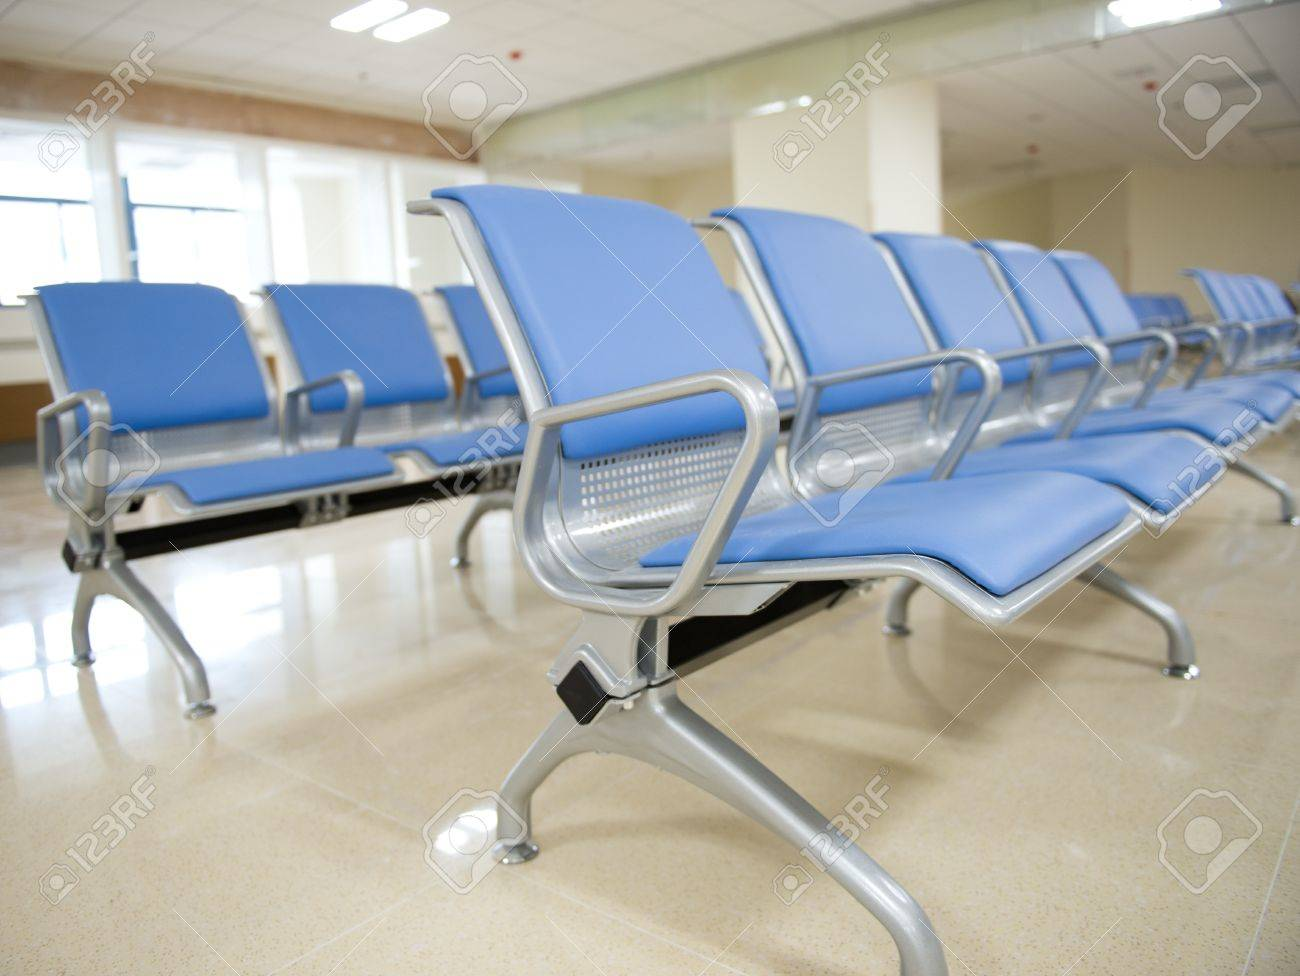 Empty chair in room - Hospital Waiting Room With Empty Chairs Stock Photo 17828384